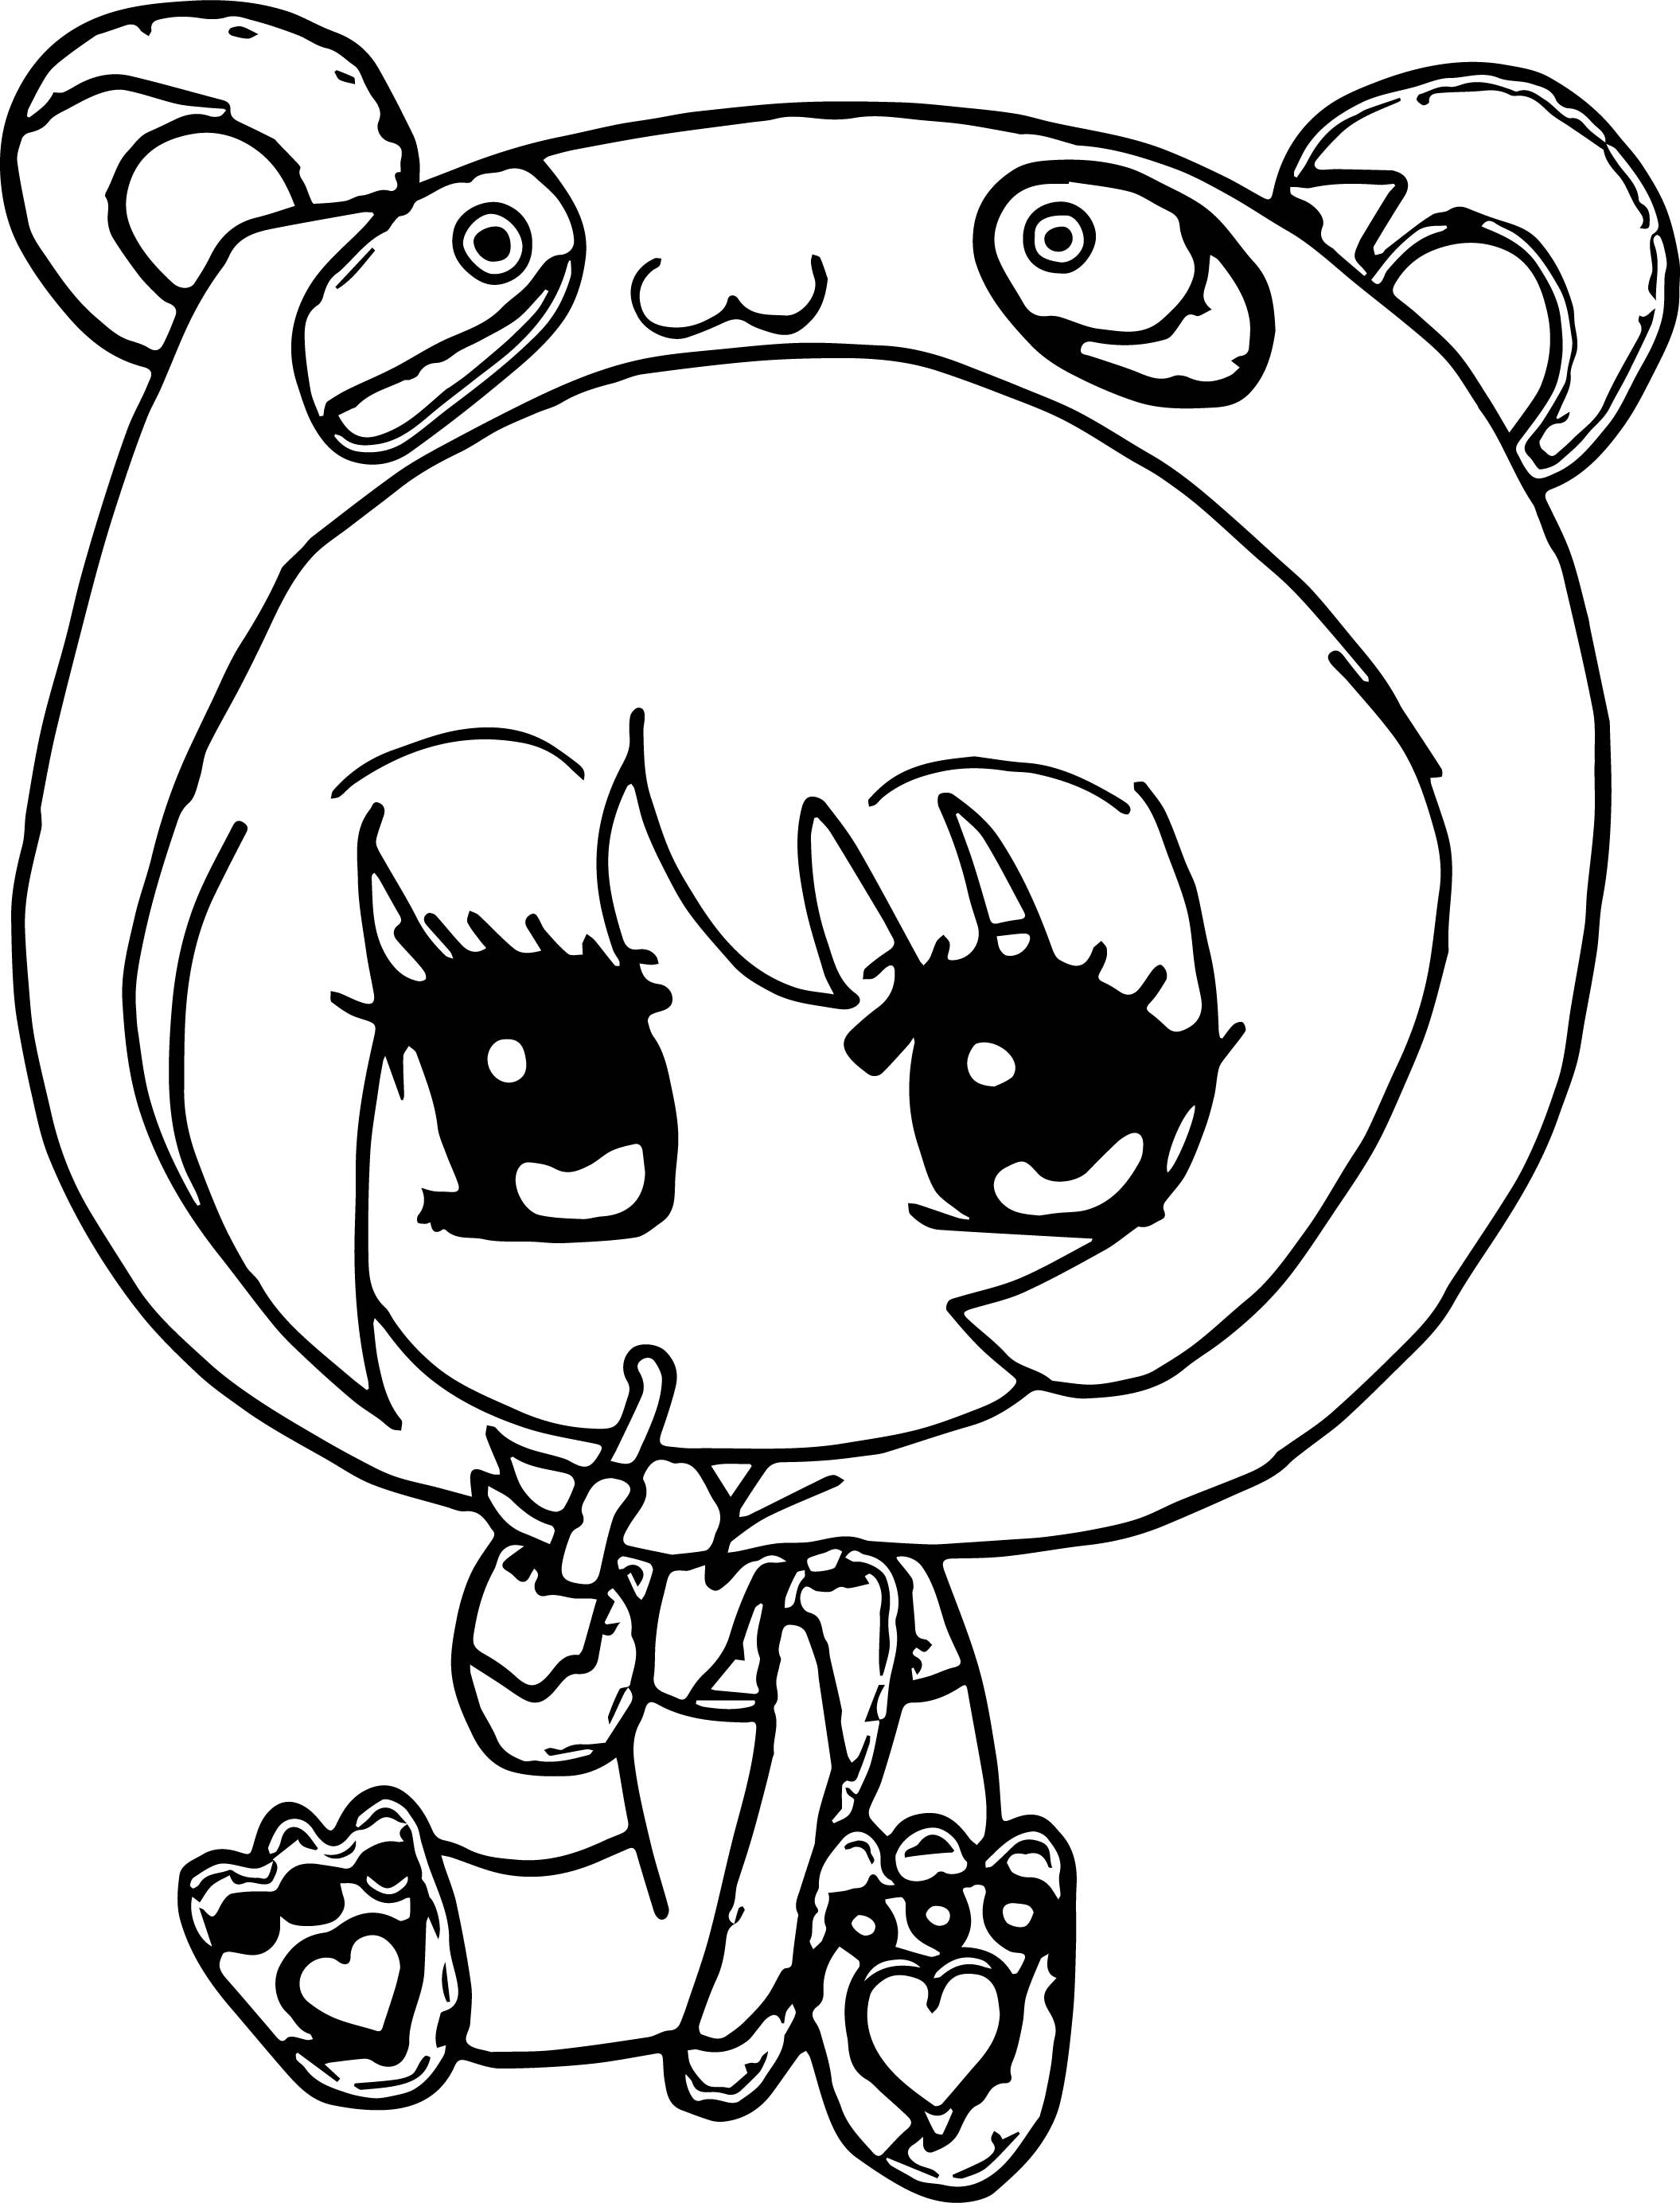 coloring pages anime chibi free printable chibi coloring pages for kids pages anime chibi coloring